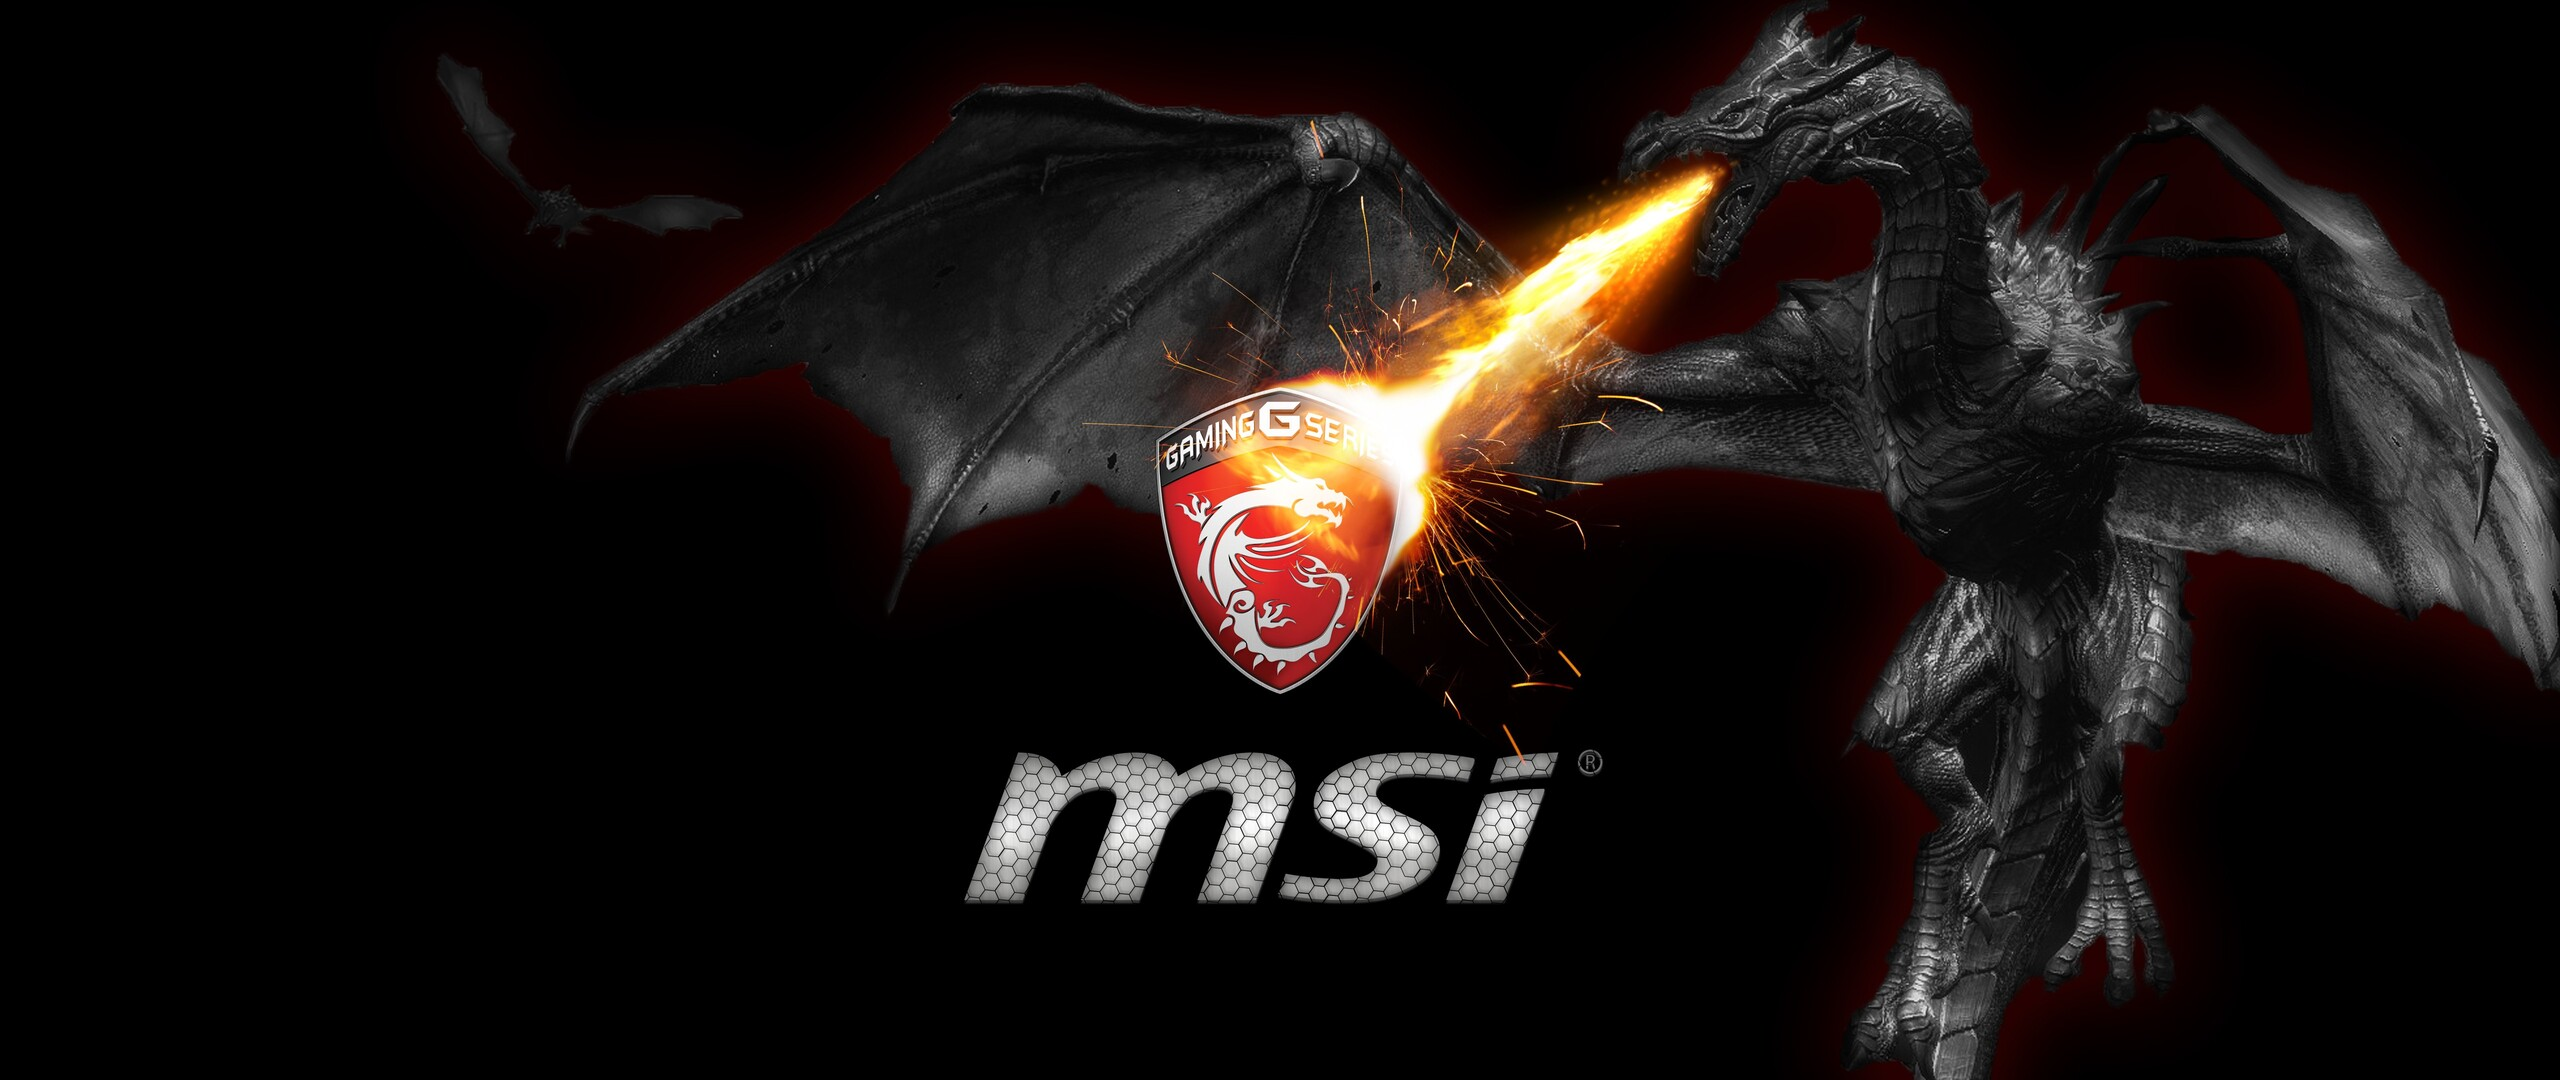 2560x1080 MSI 2560x1080 Resolution HD 4k Wallpapers, Images, Backgrounds, Photos and Pictures